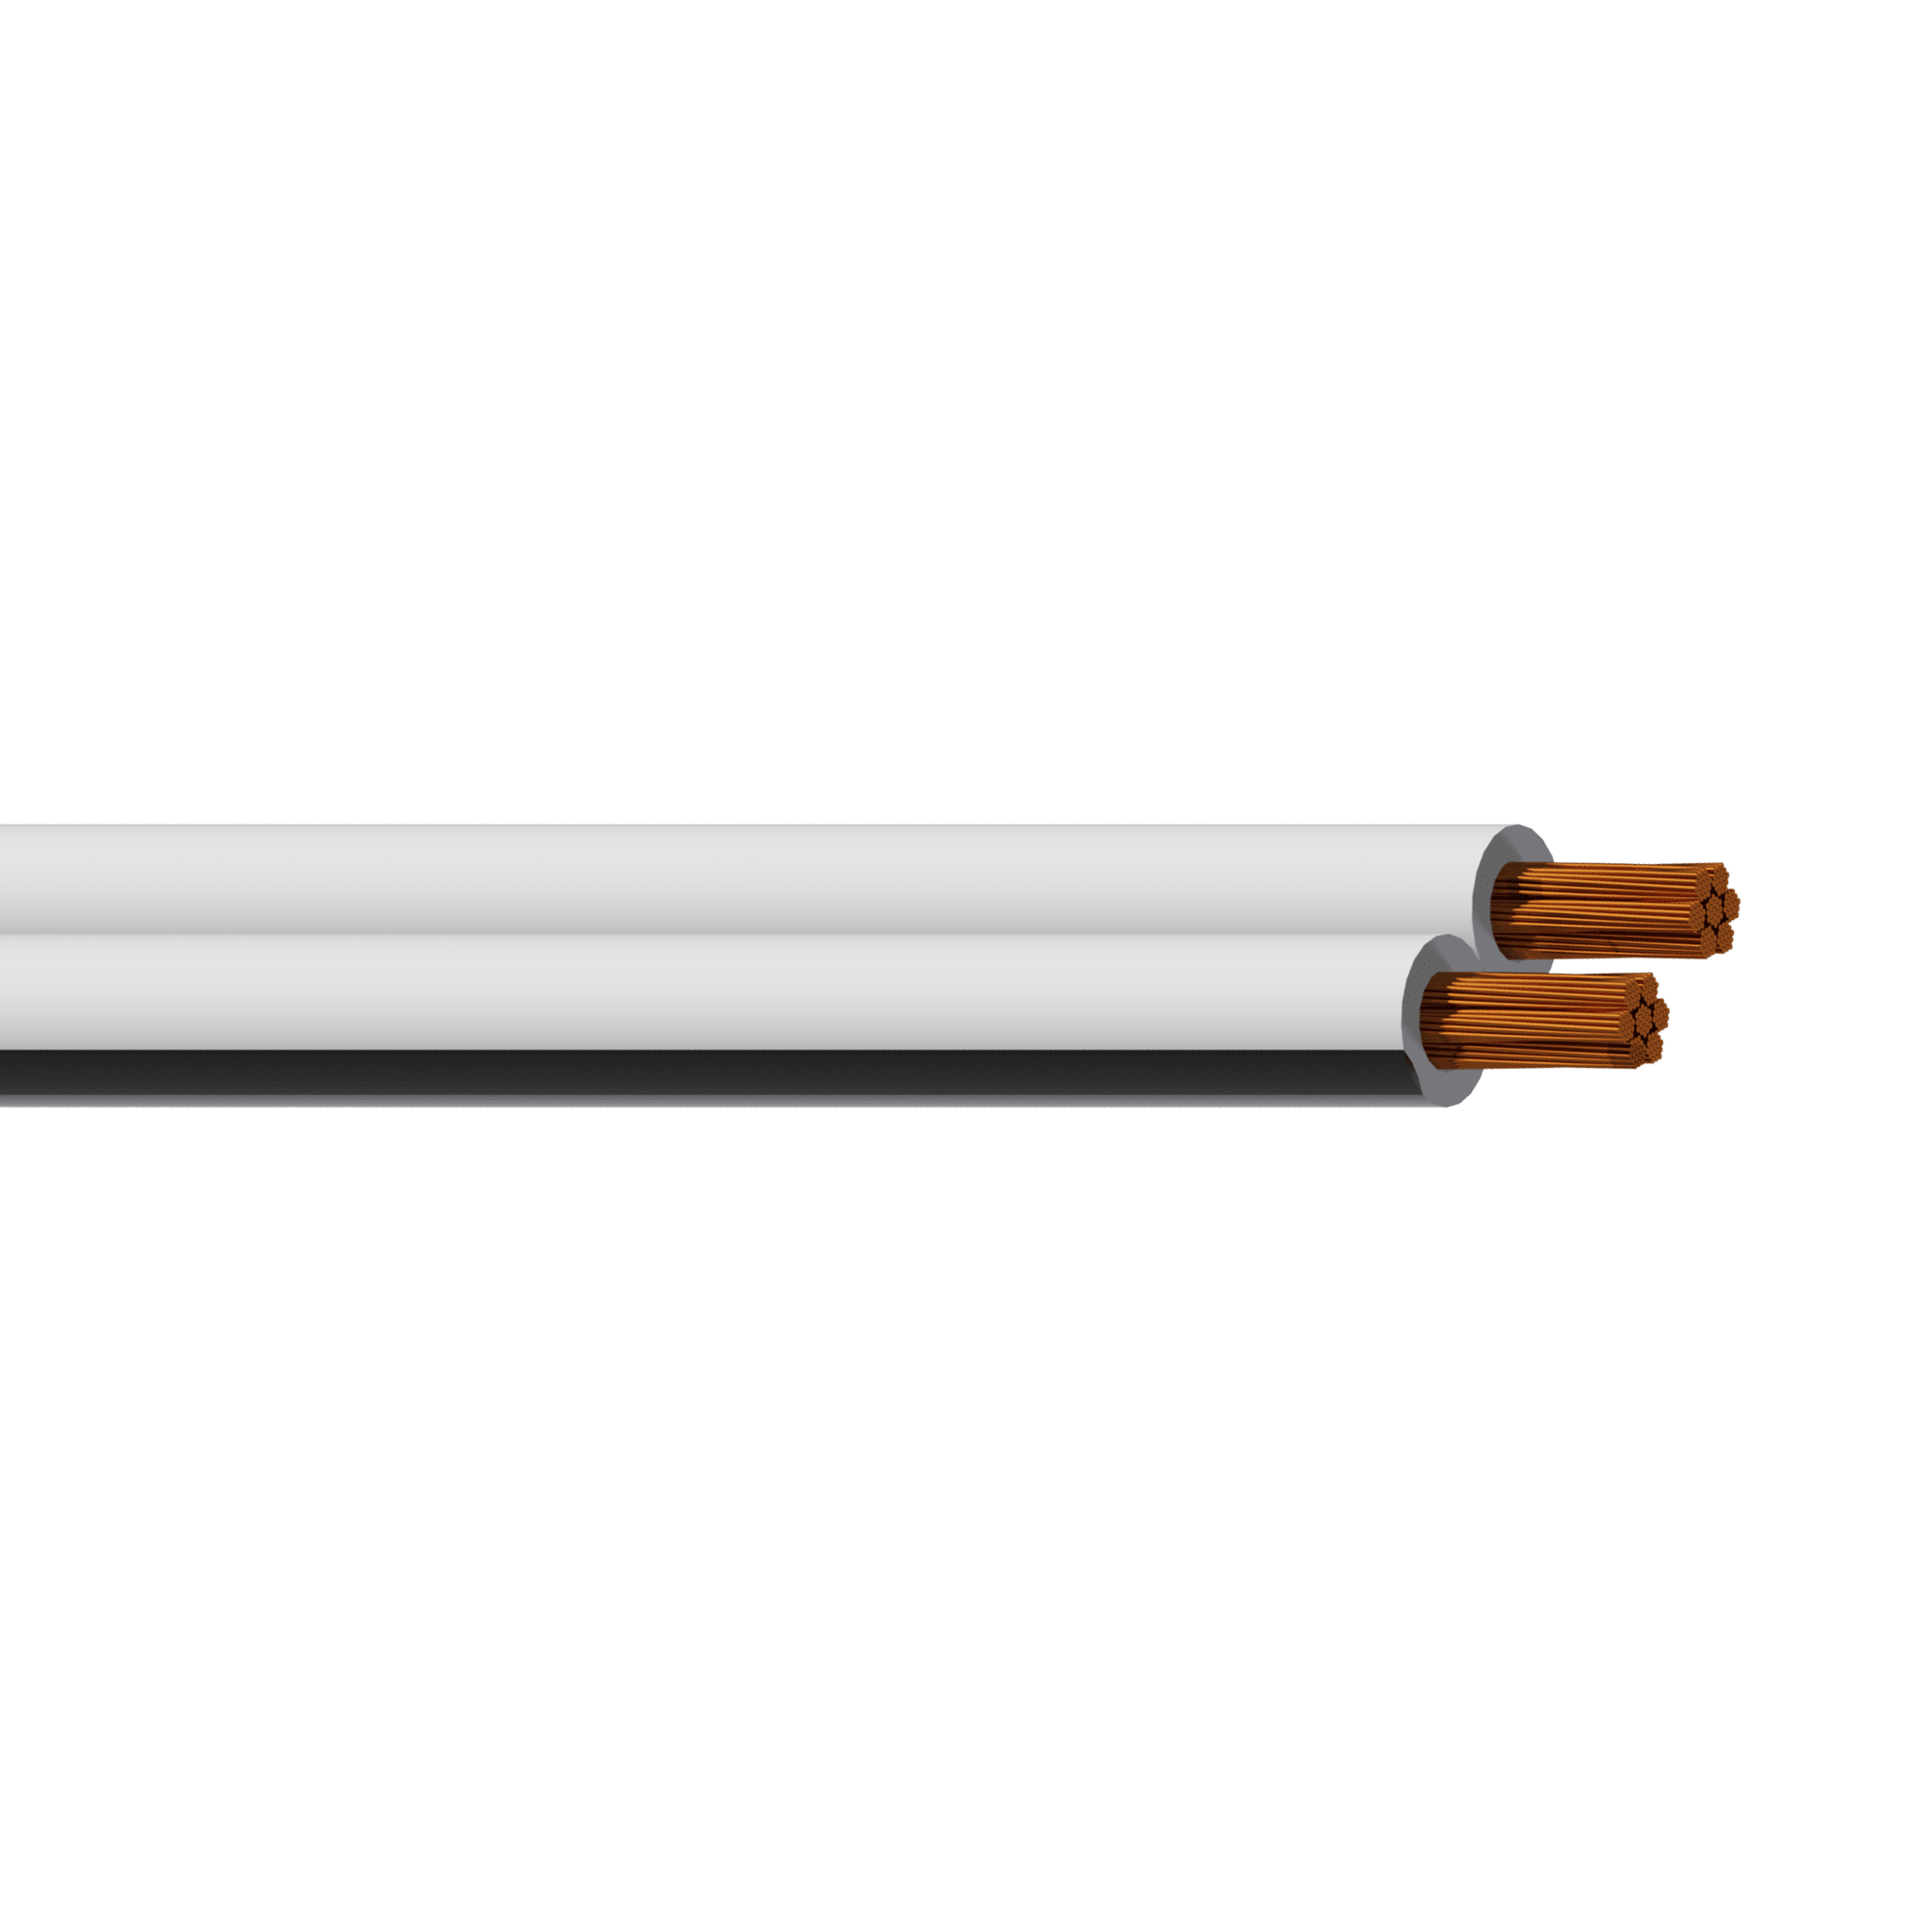 RZ07 - Loudspeaker cable - 2 x 0.75 mm² - 18 AWG